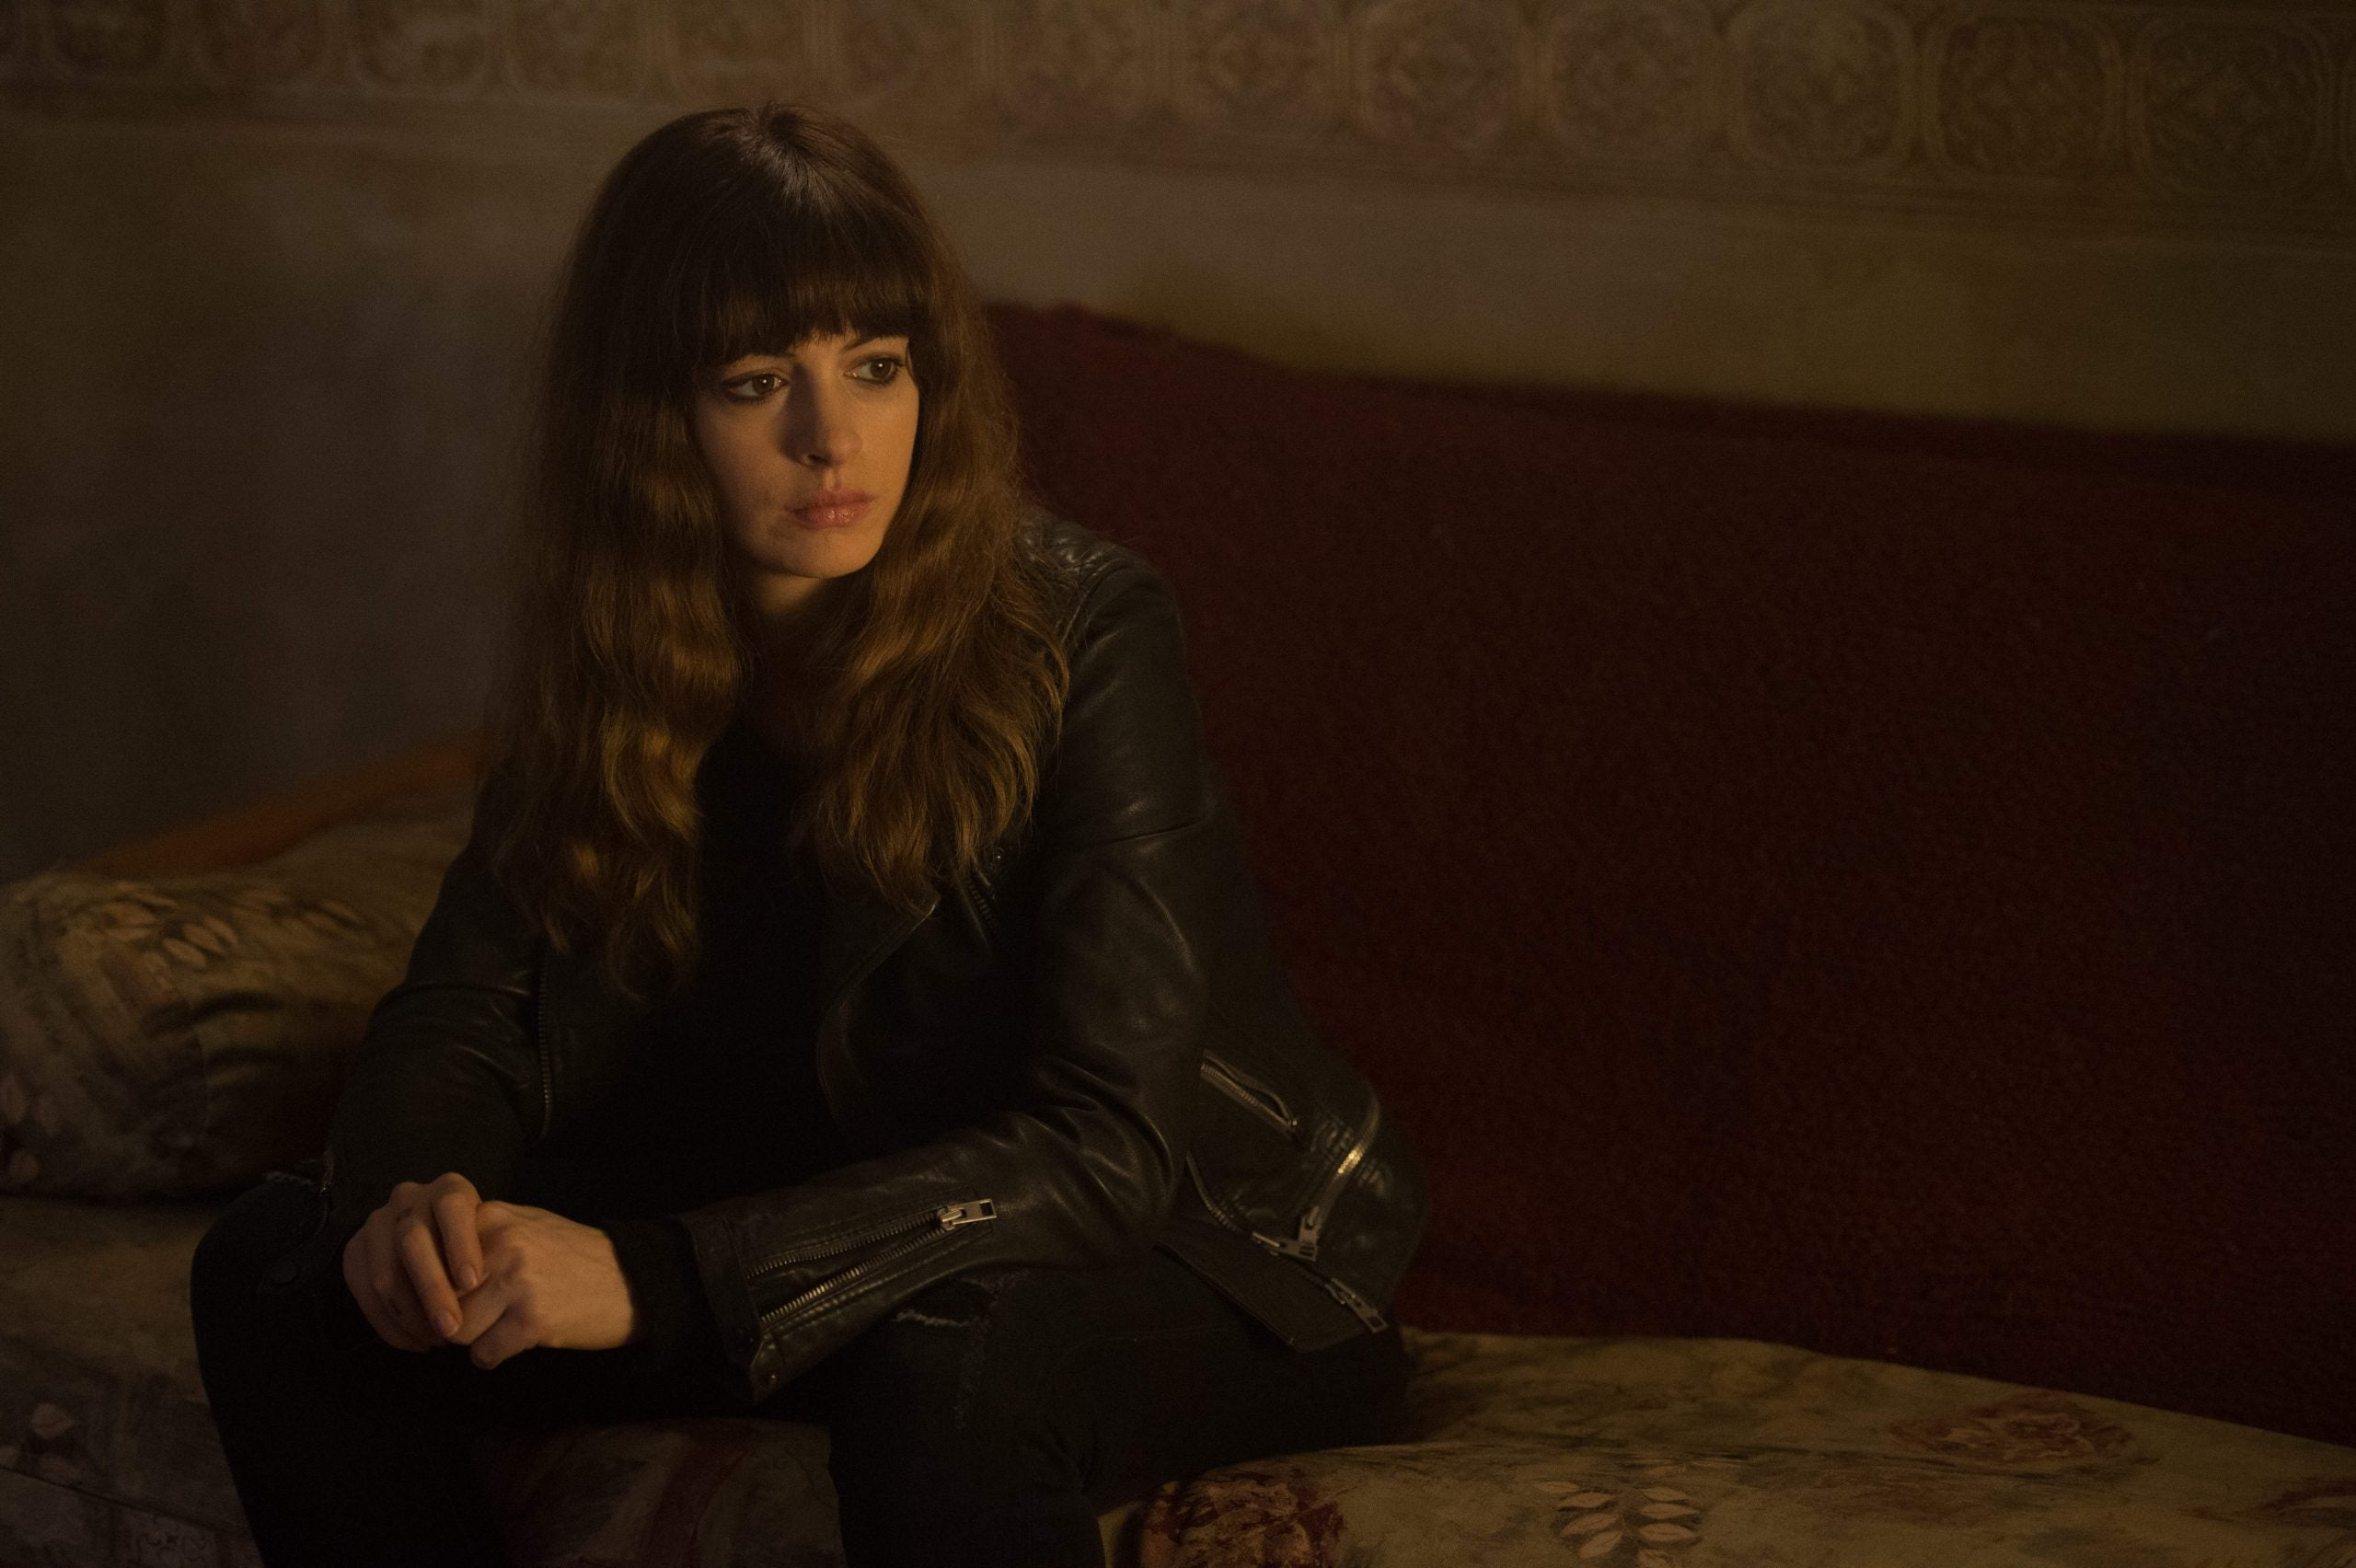 Colossal and Spaceship: Satisfyingly bizarre takes on sci-fi